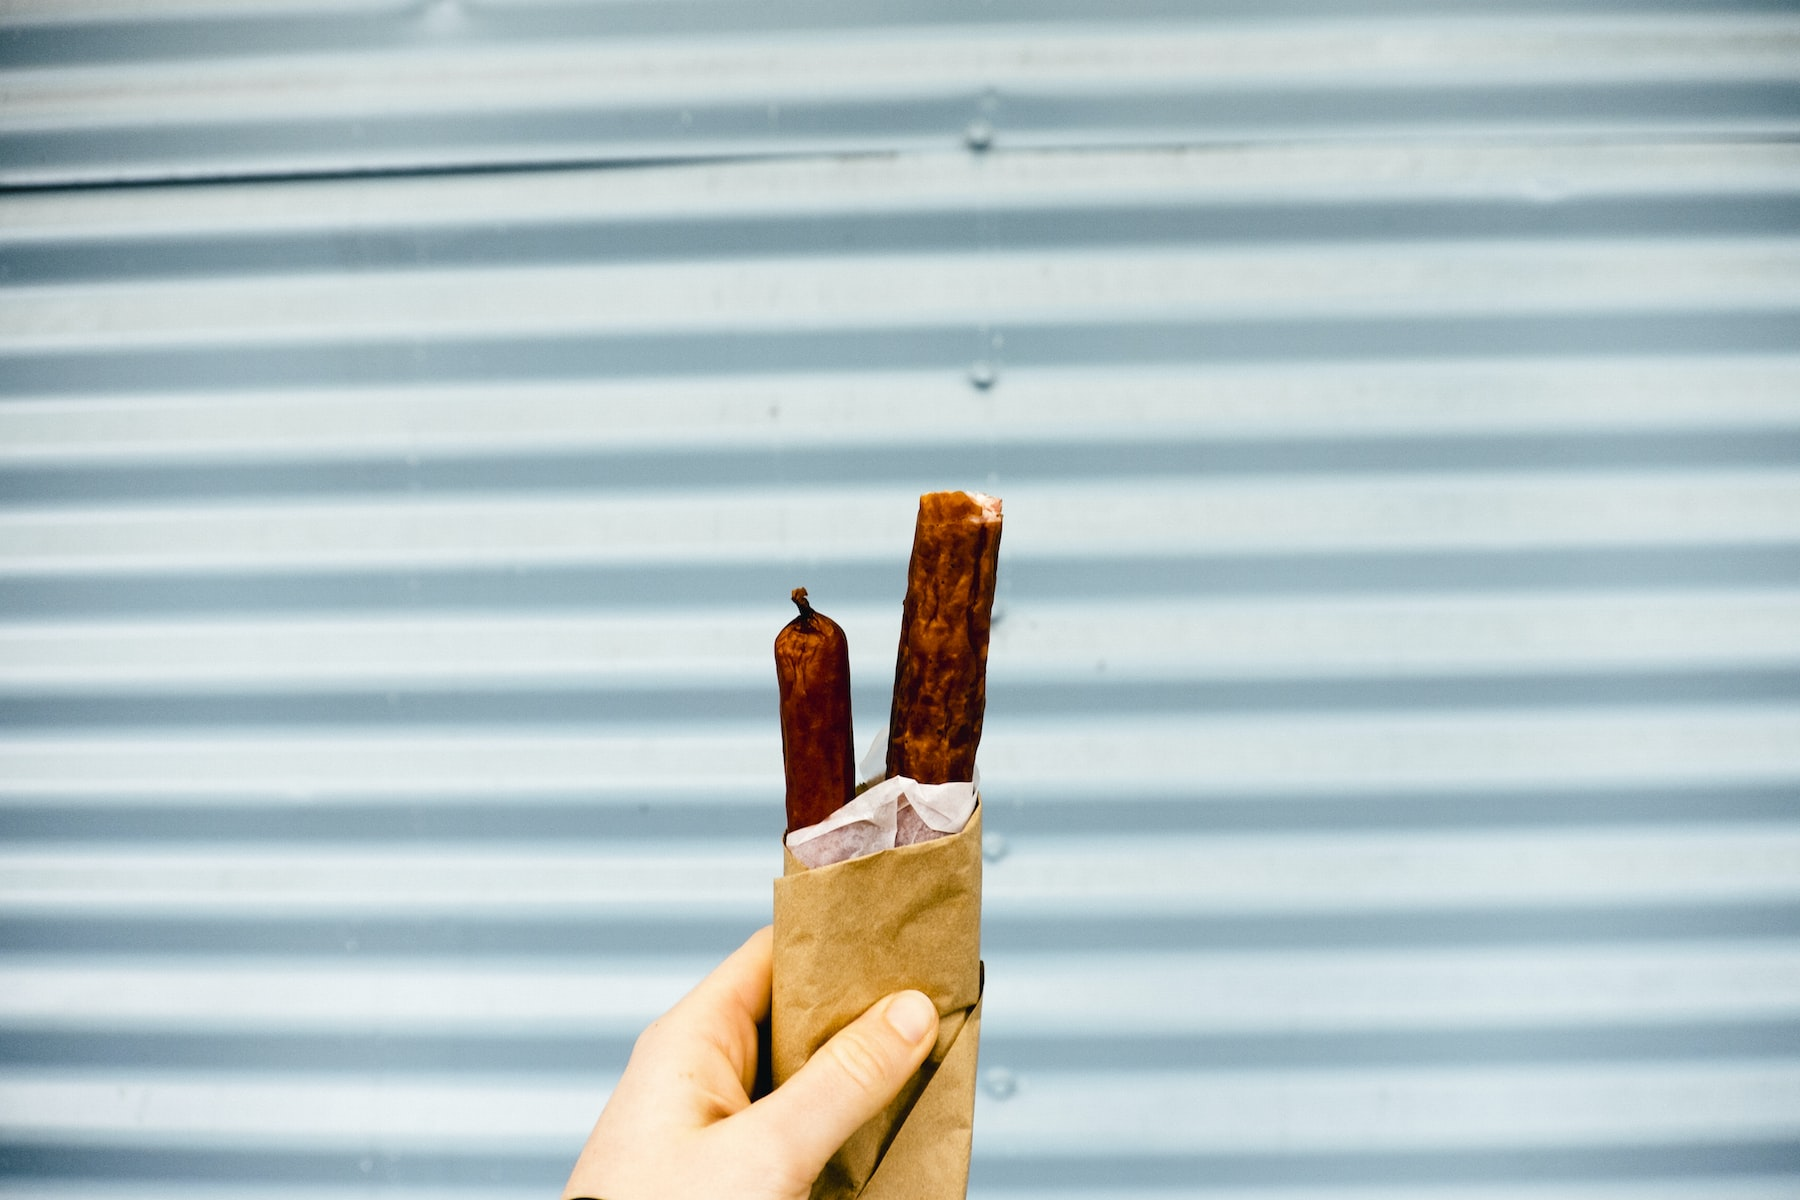 Outstretched hand holding sausage snacks against a gray garage